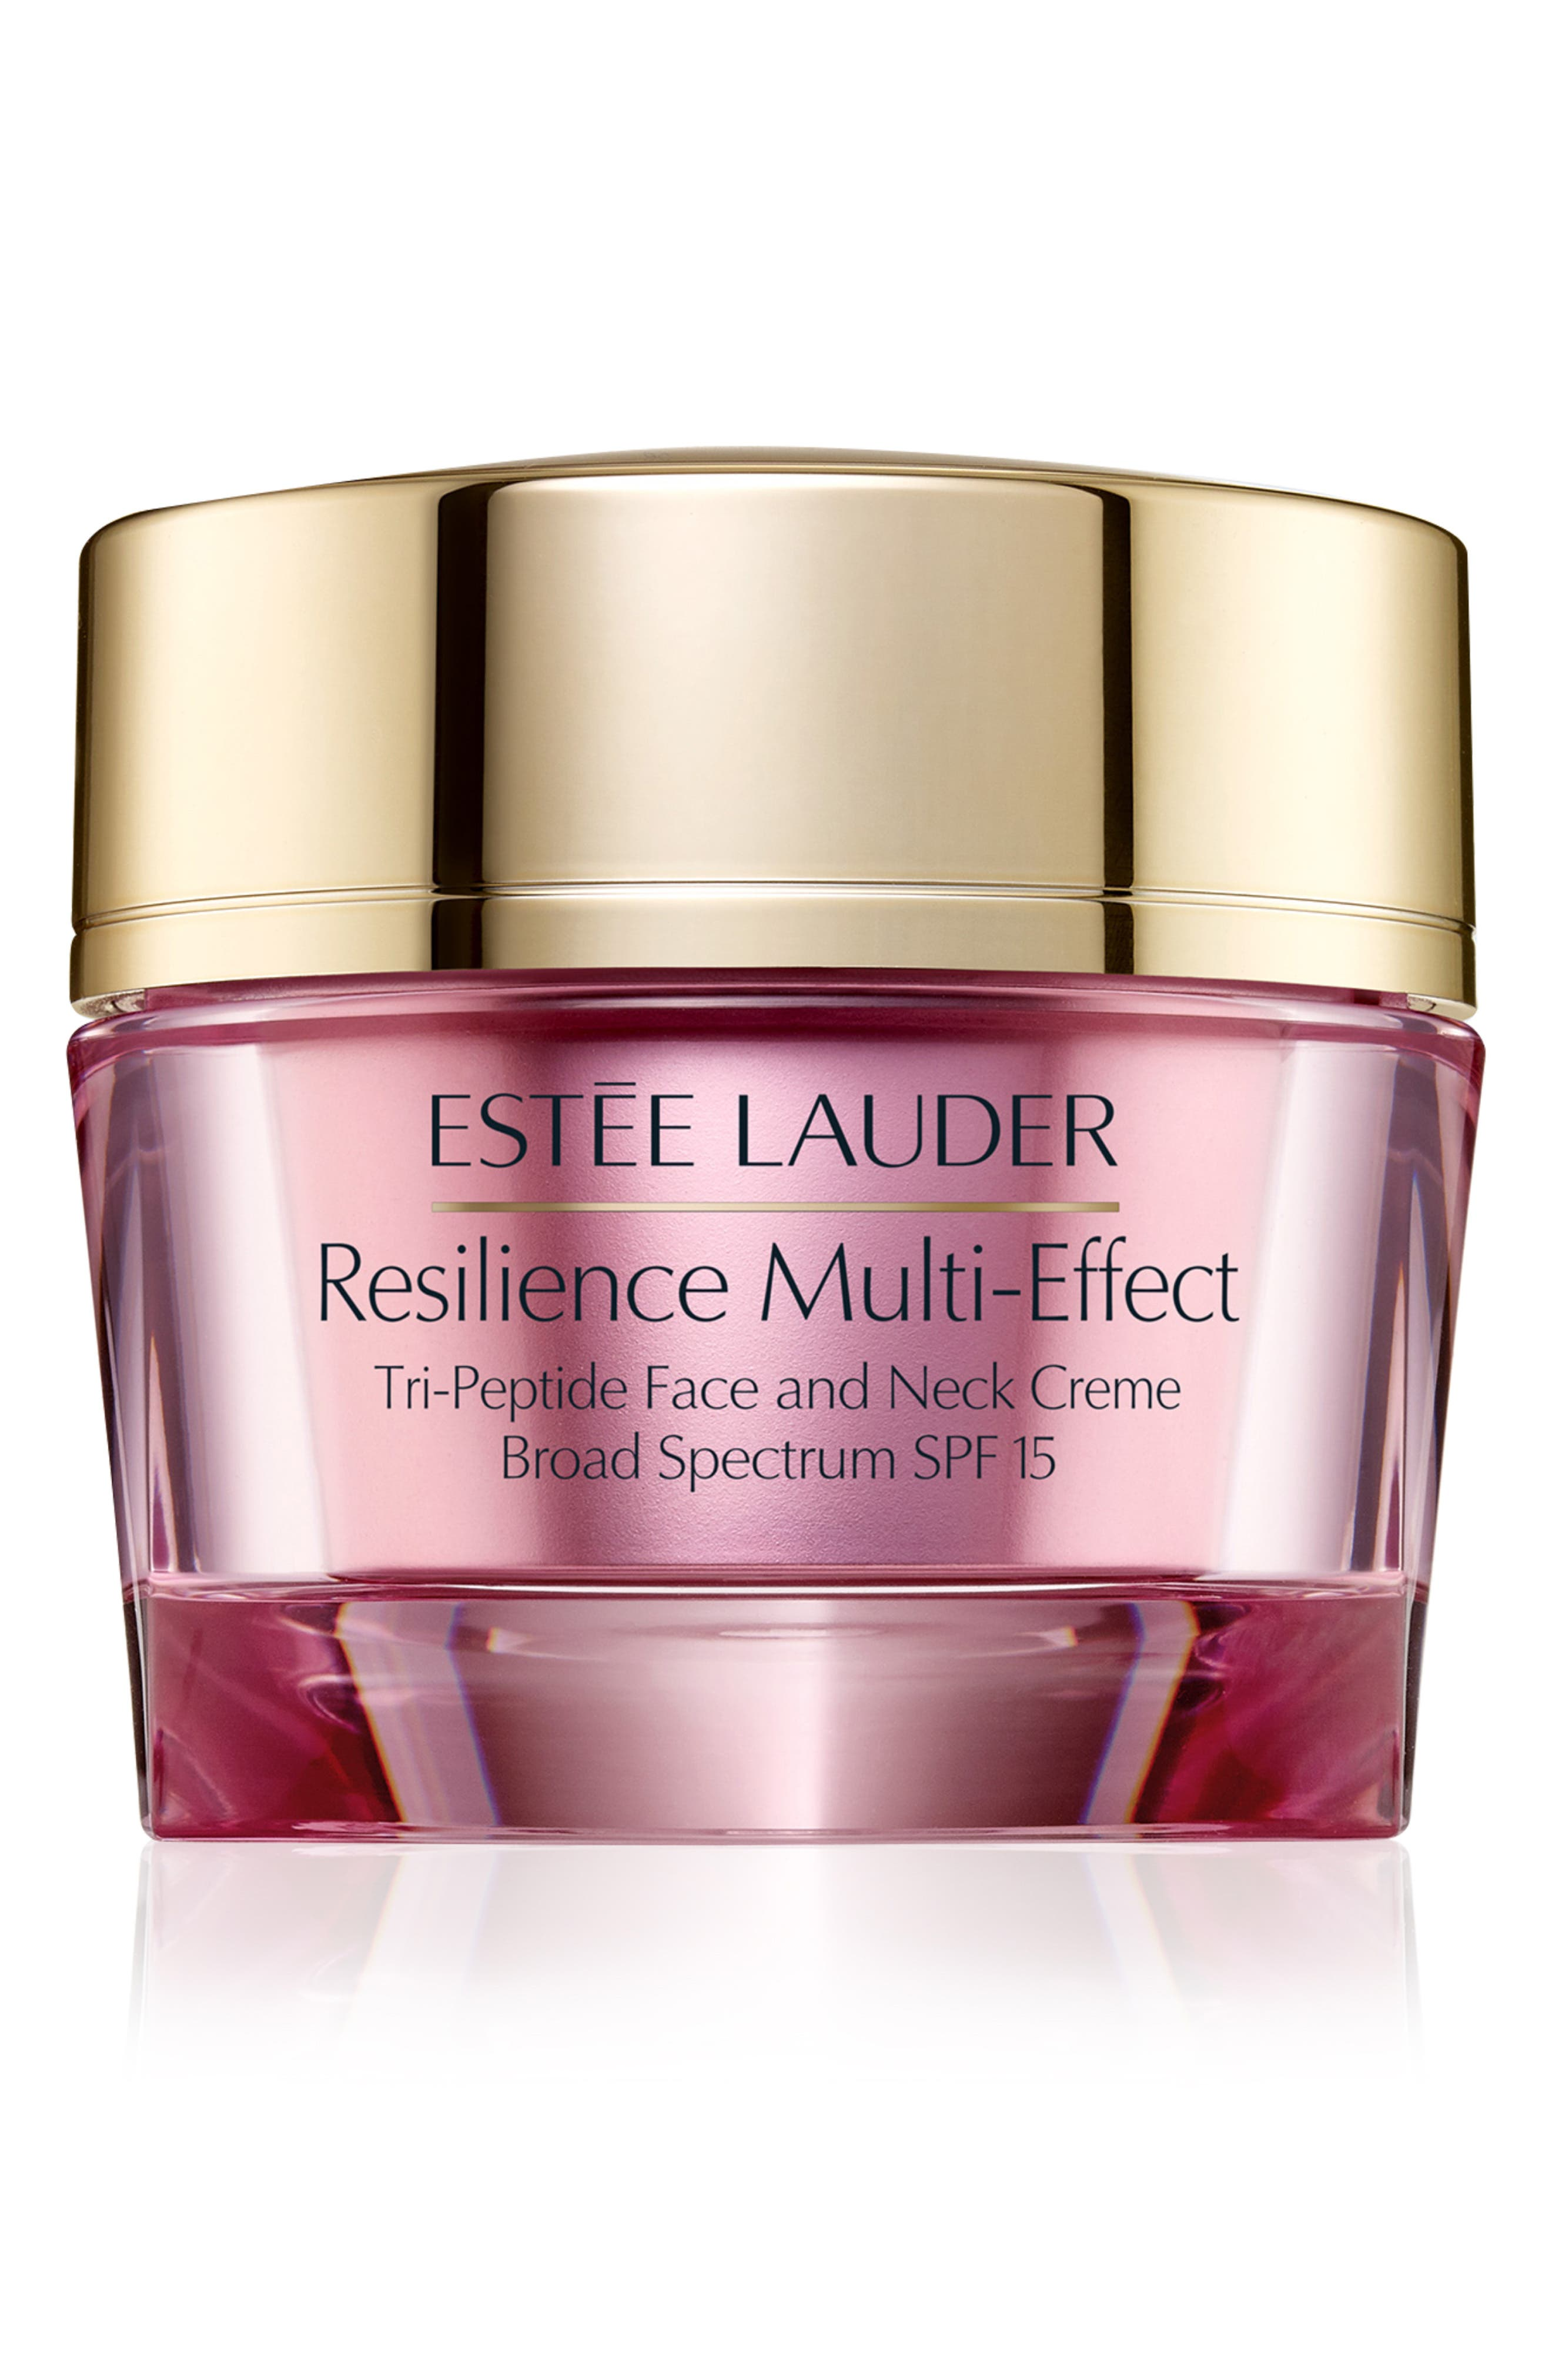 Resilience Multi-Effect Tri-Peptide Face And Neck Moisturizer Spf 15 For Normal/combination Skin